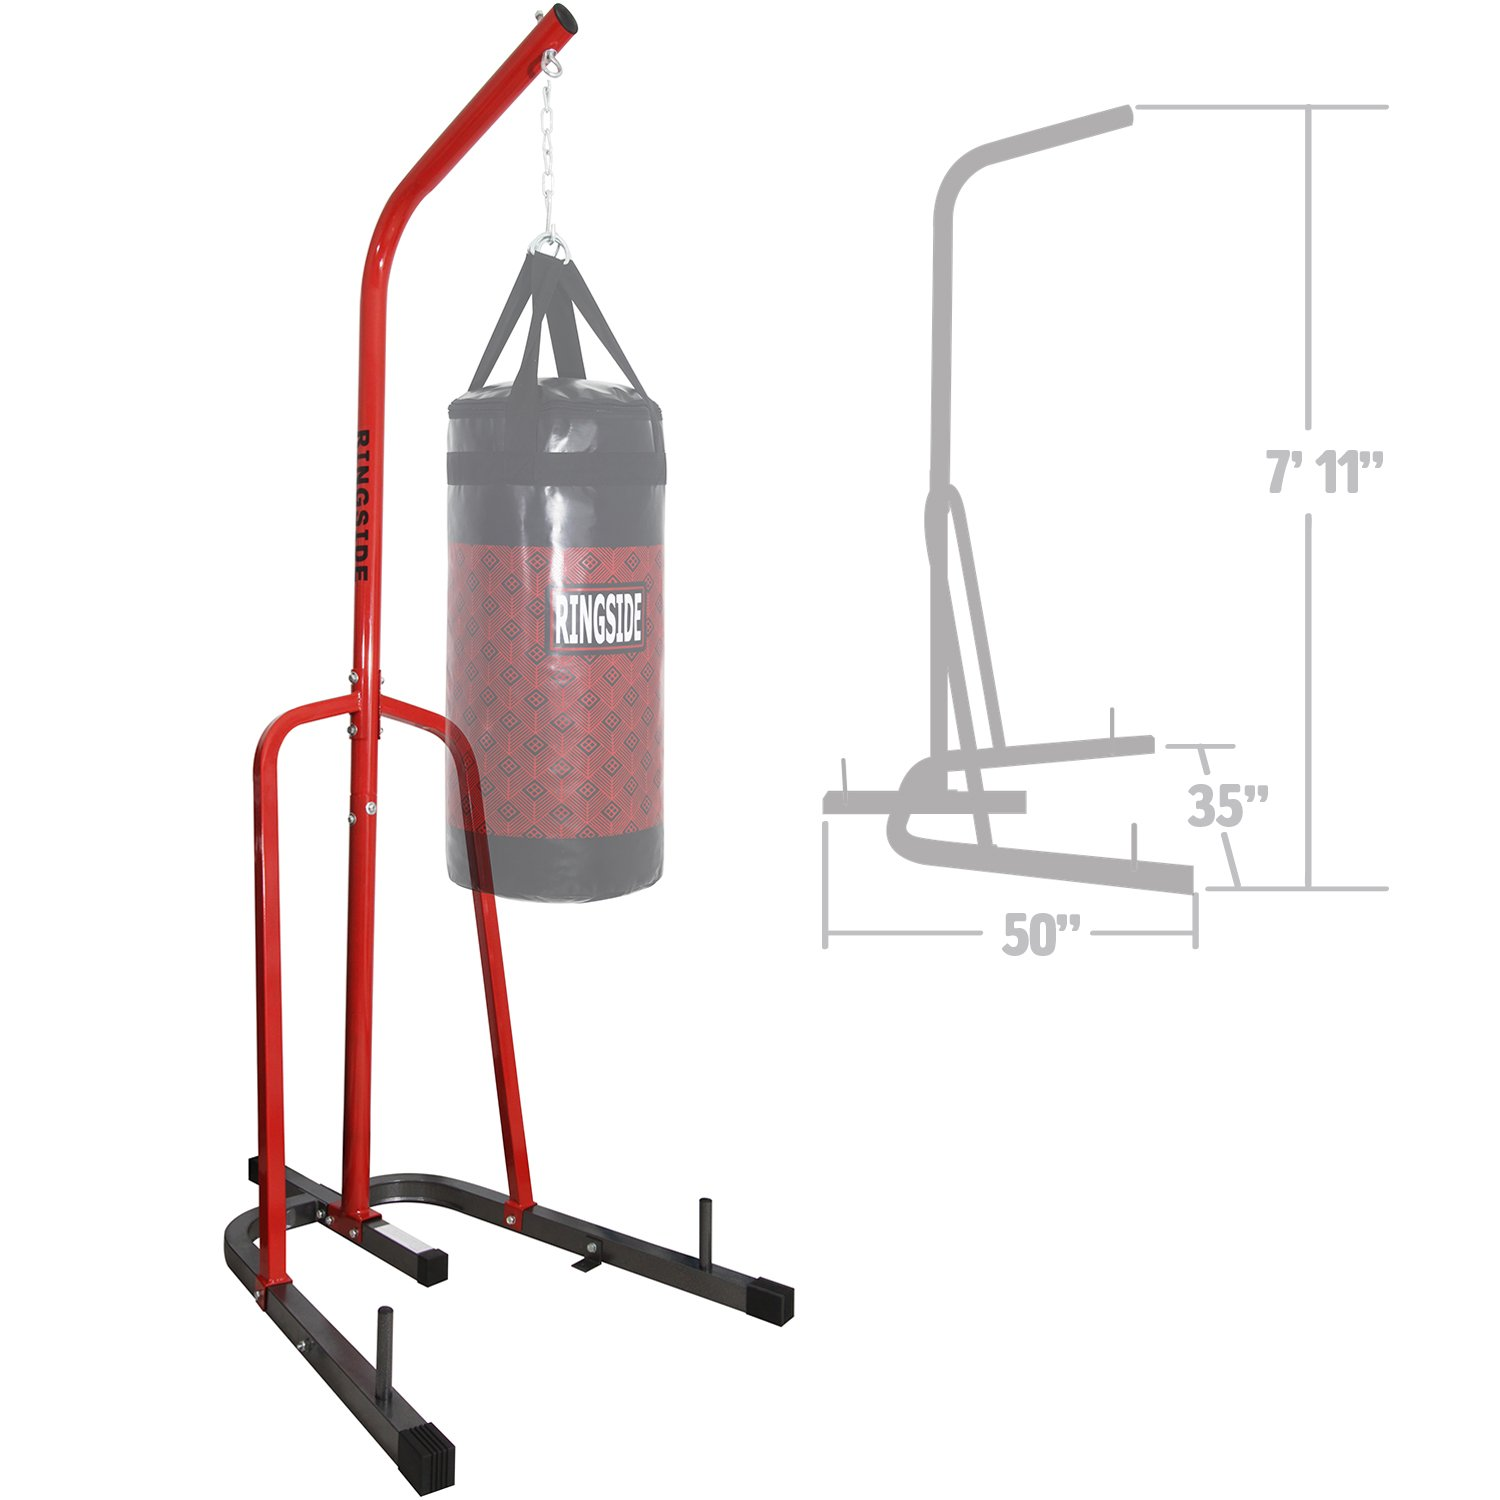 Ringside Prime Free u2013 MMA Heavy Bag Stand  sc 1 st  Gym Equipment Reviews & 5 Best Punching Bag Stands in 2017